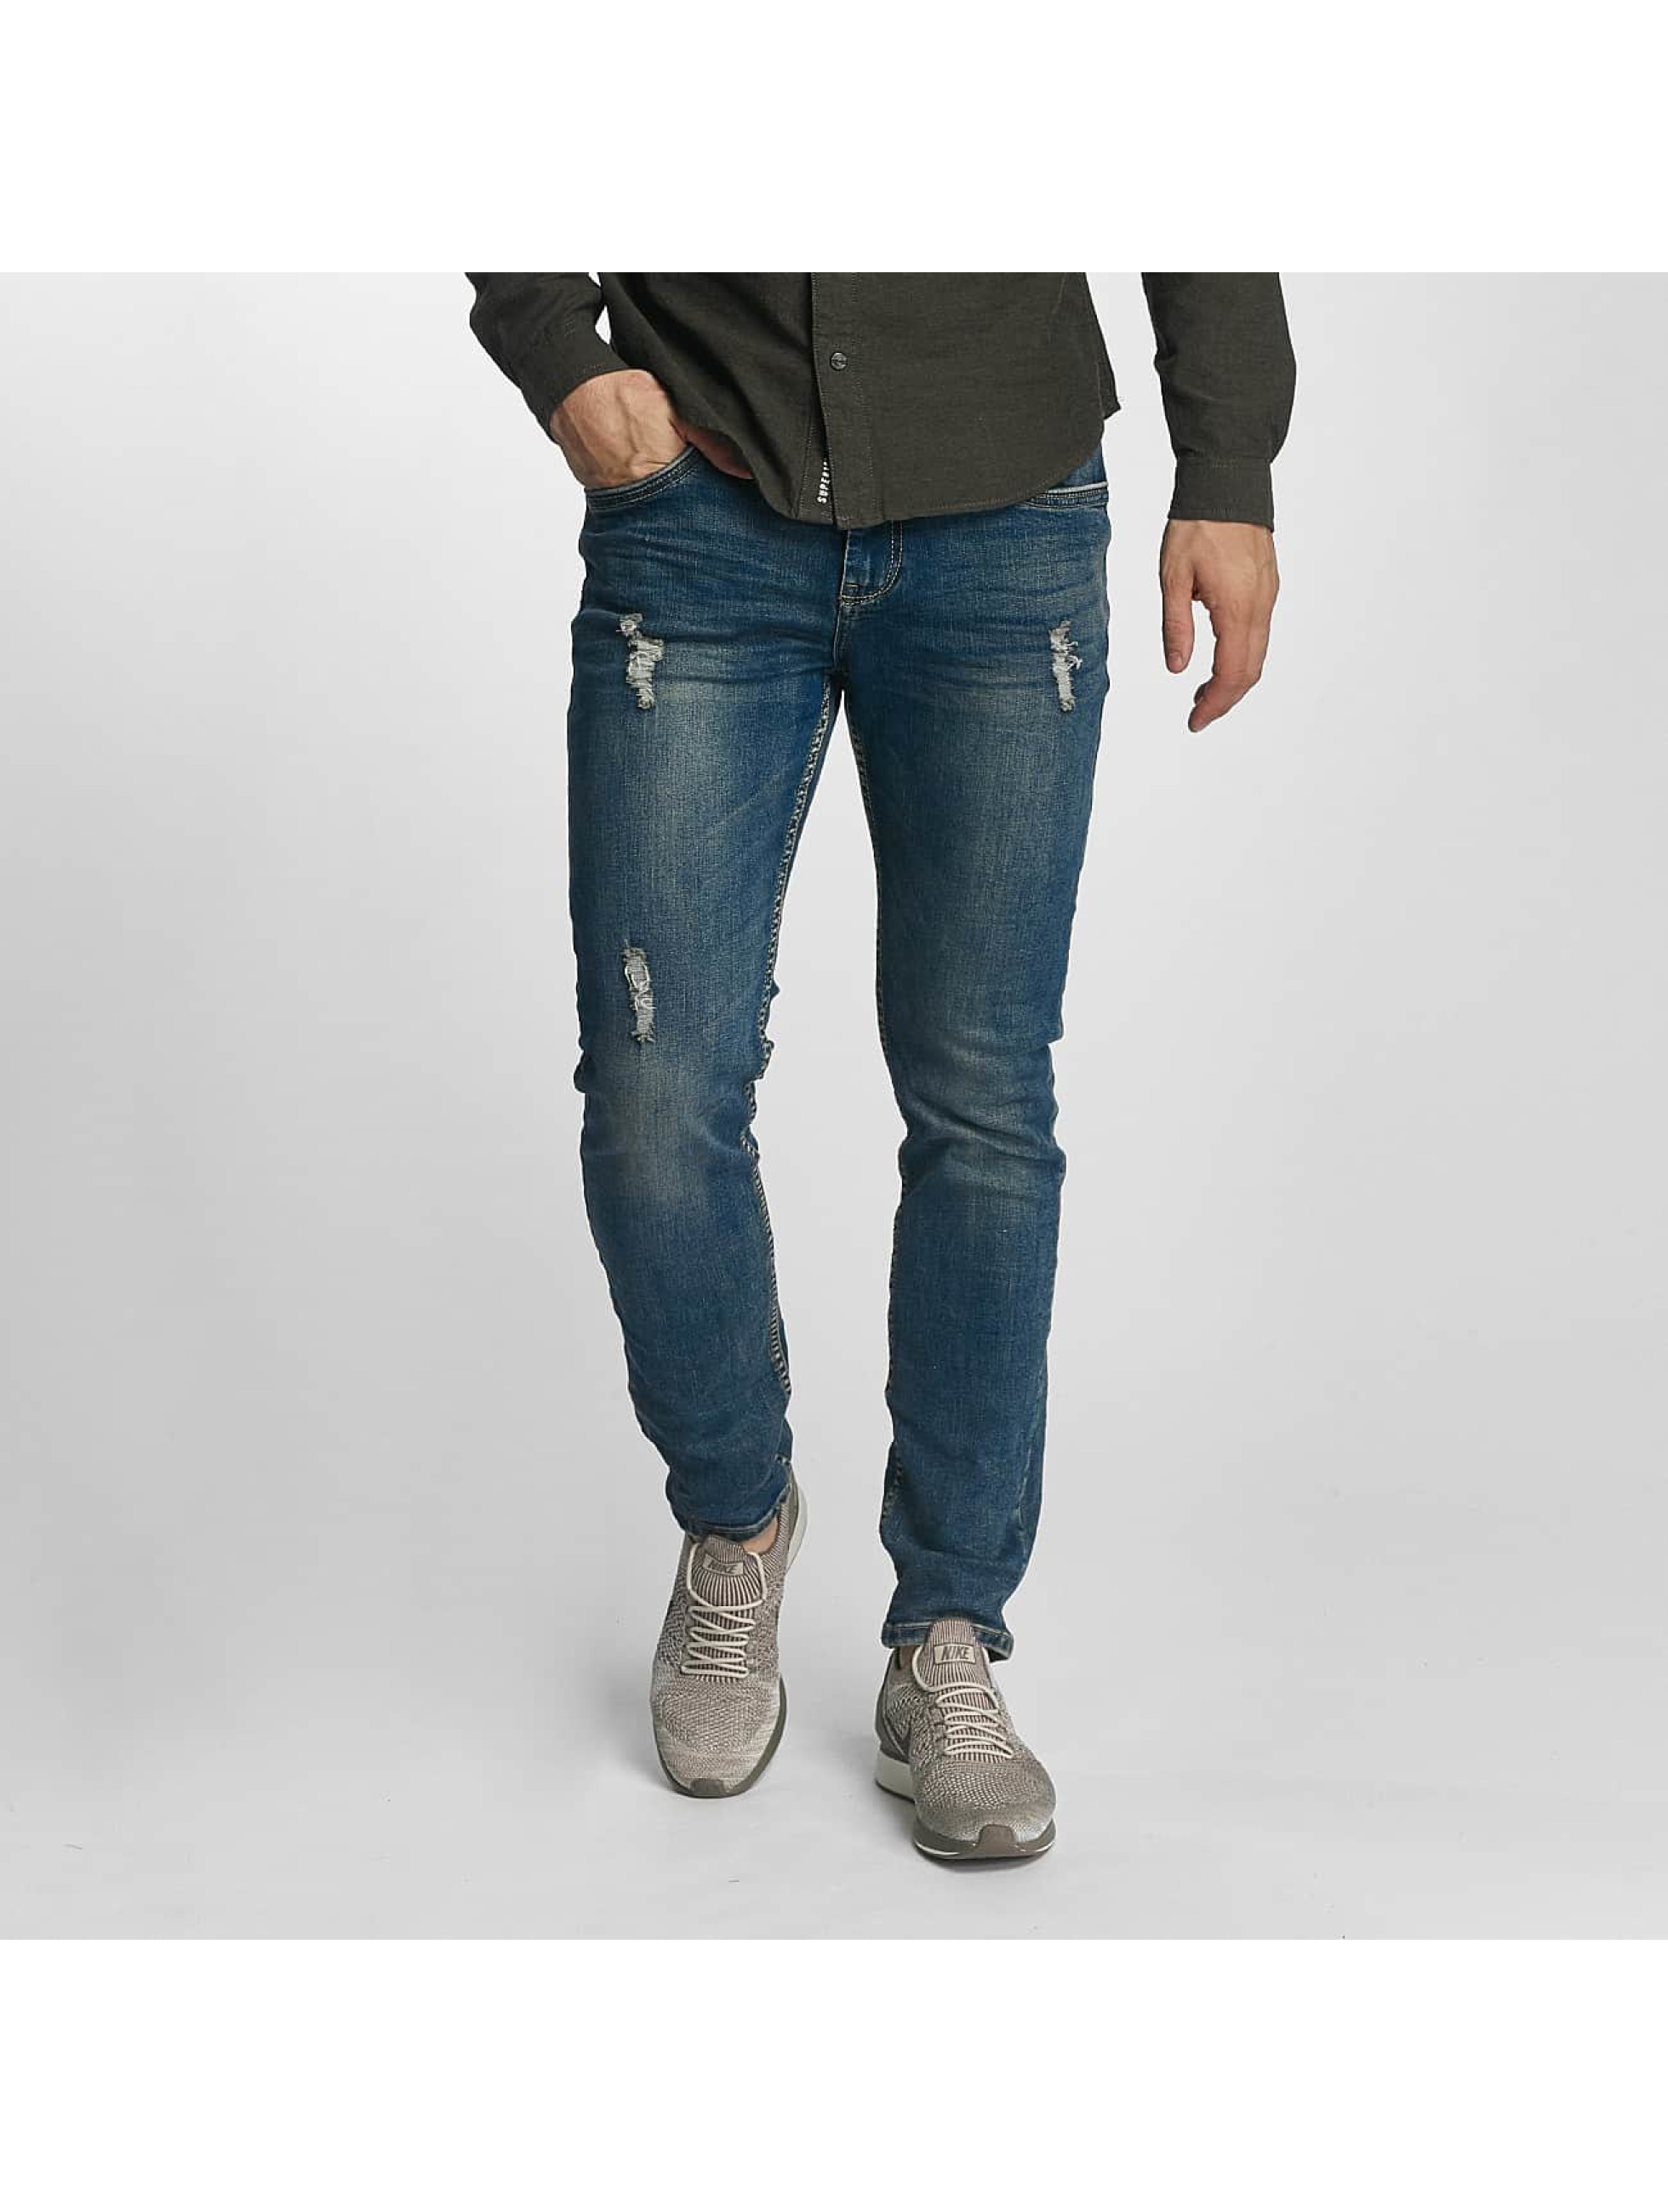 Sublevel Männer Slim Fit Jeans Destroyed Look in blau